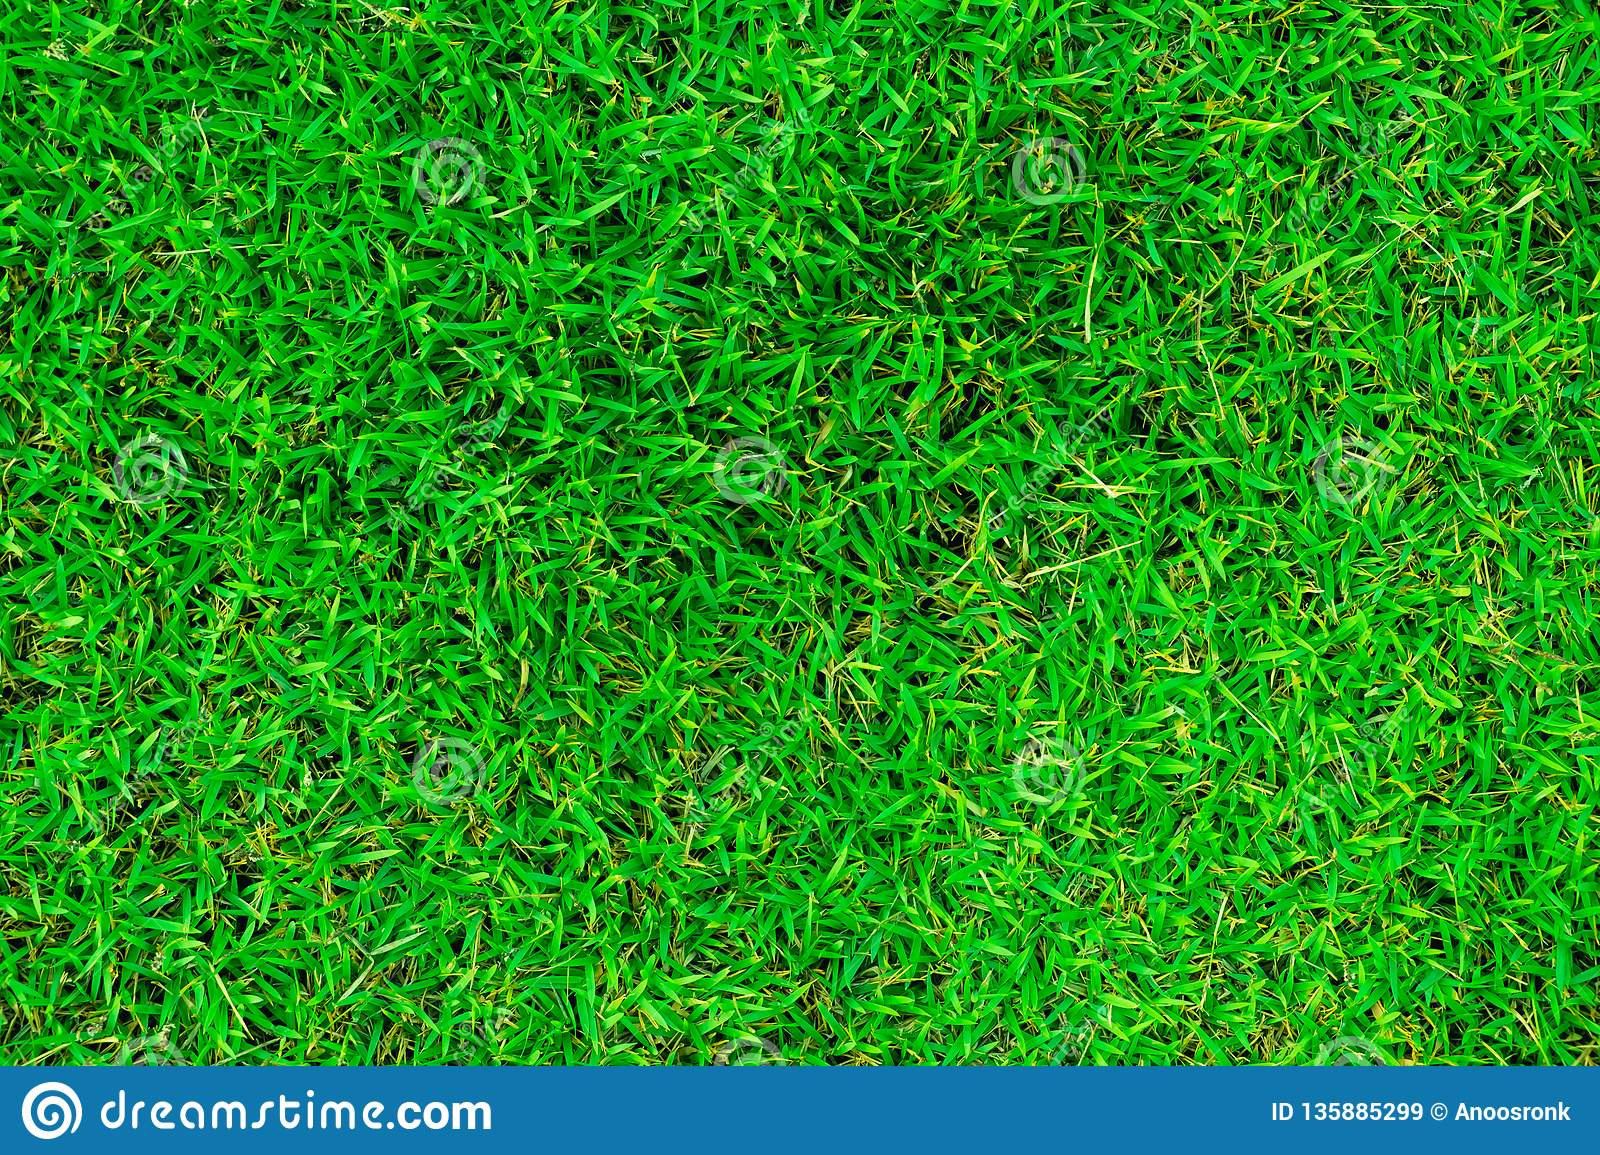 Natural green grass in the top view.